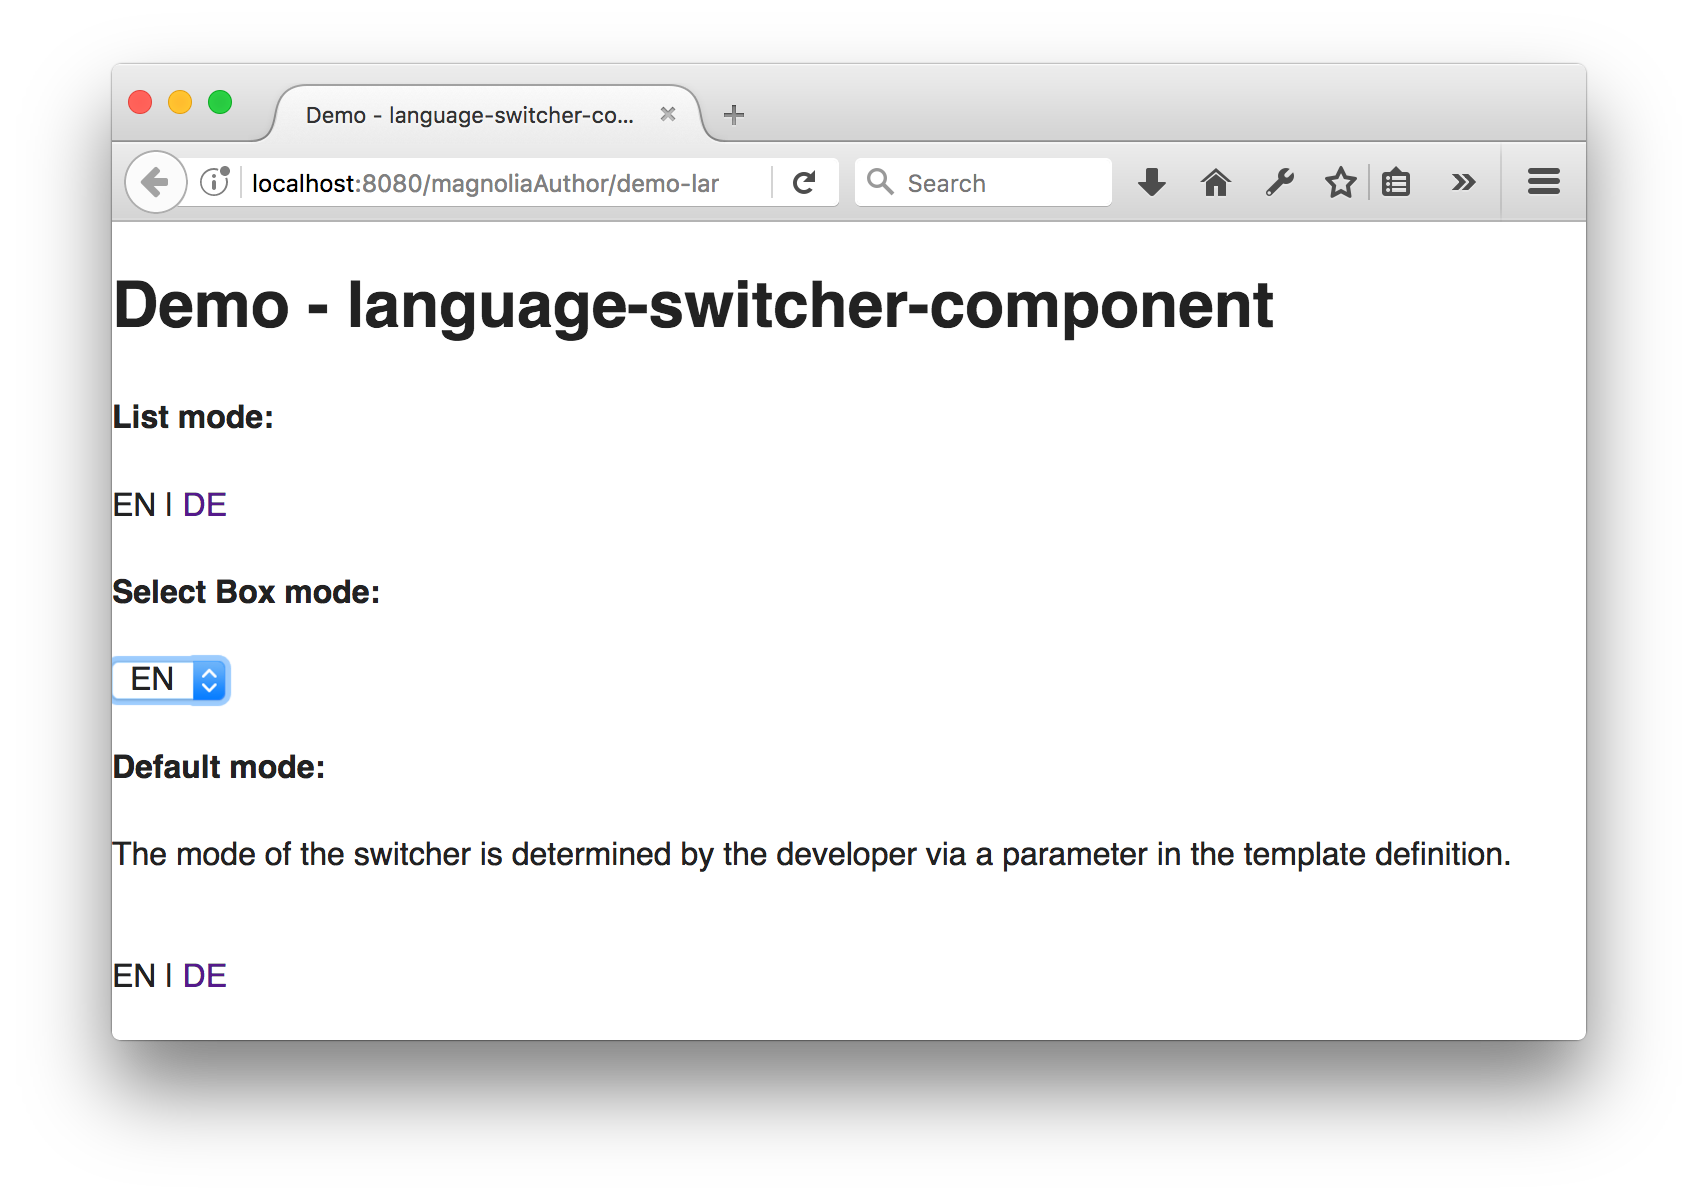 Demo page with component